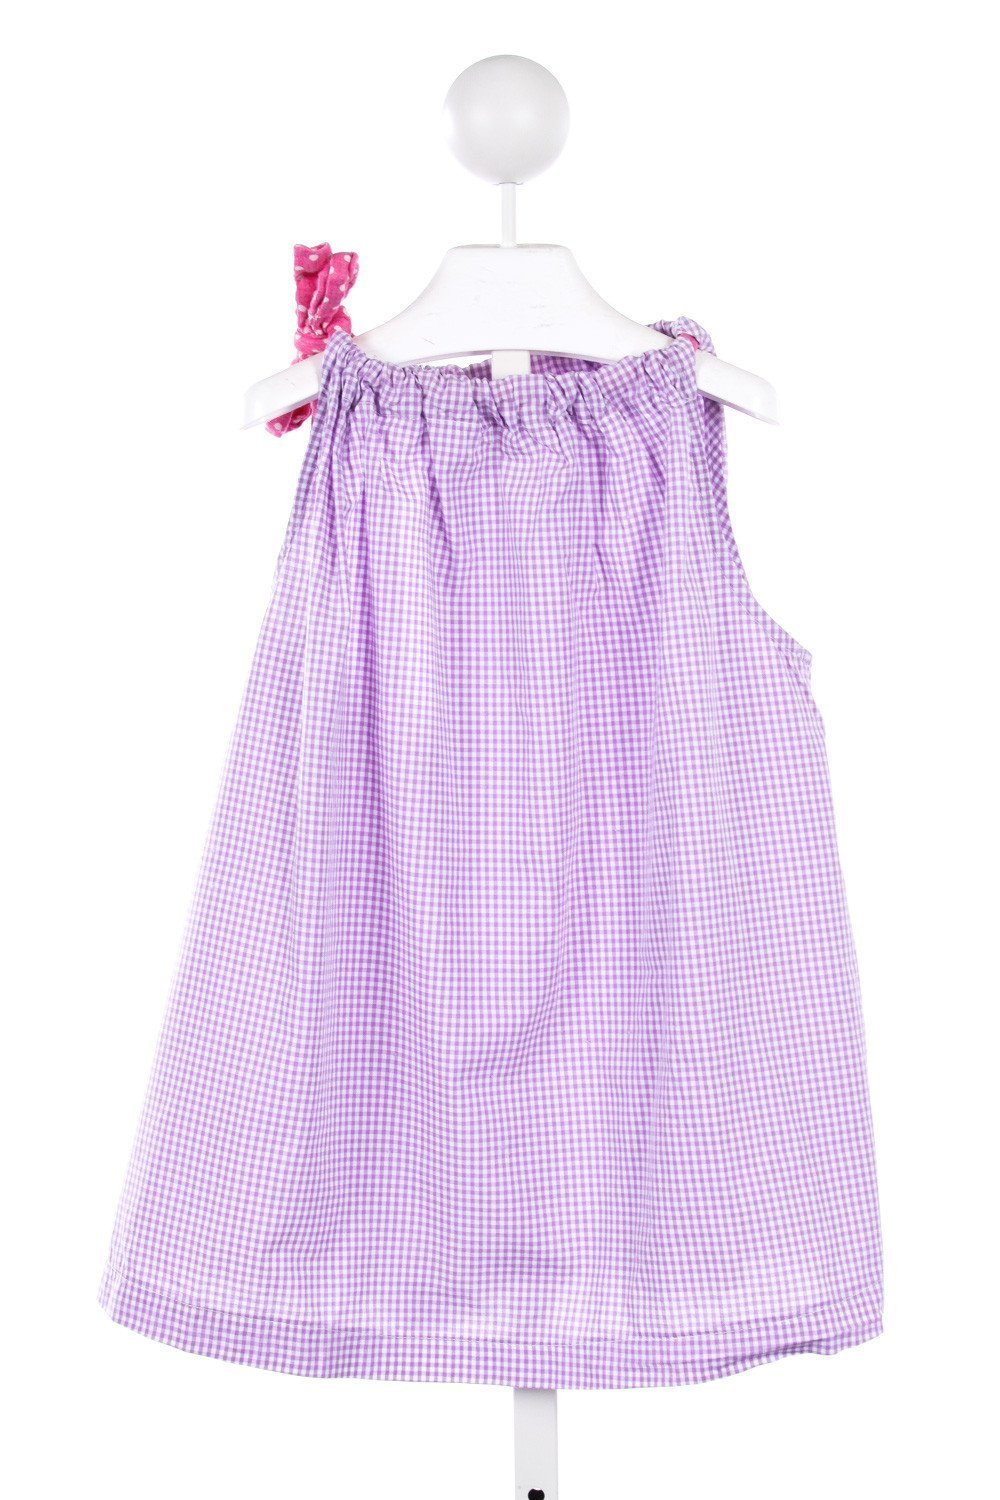 ALICE KATHLEEN PURPLE GINGHAM TOP WITH TIE